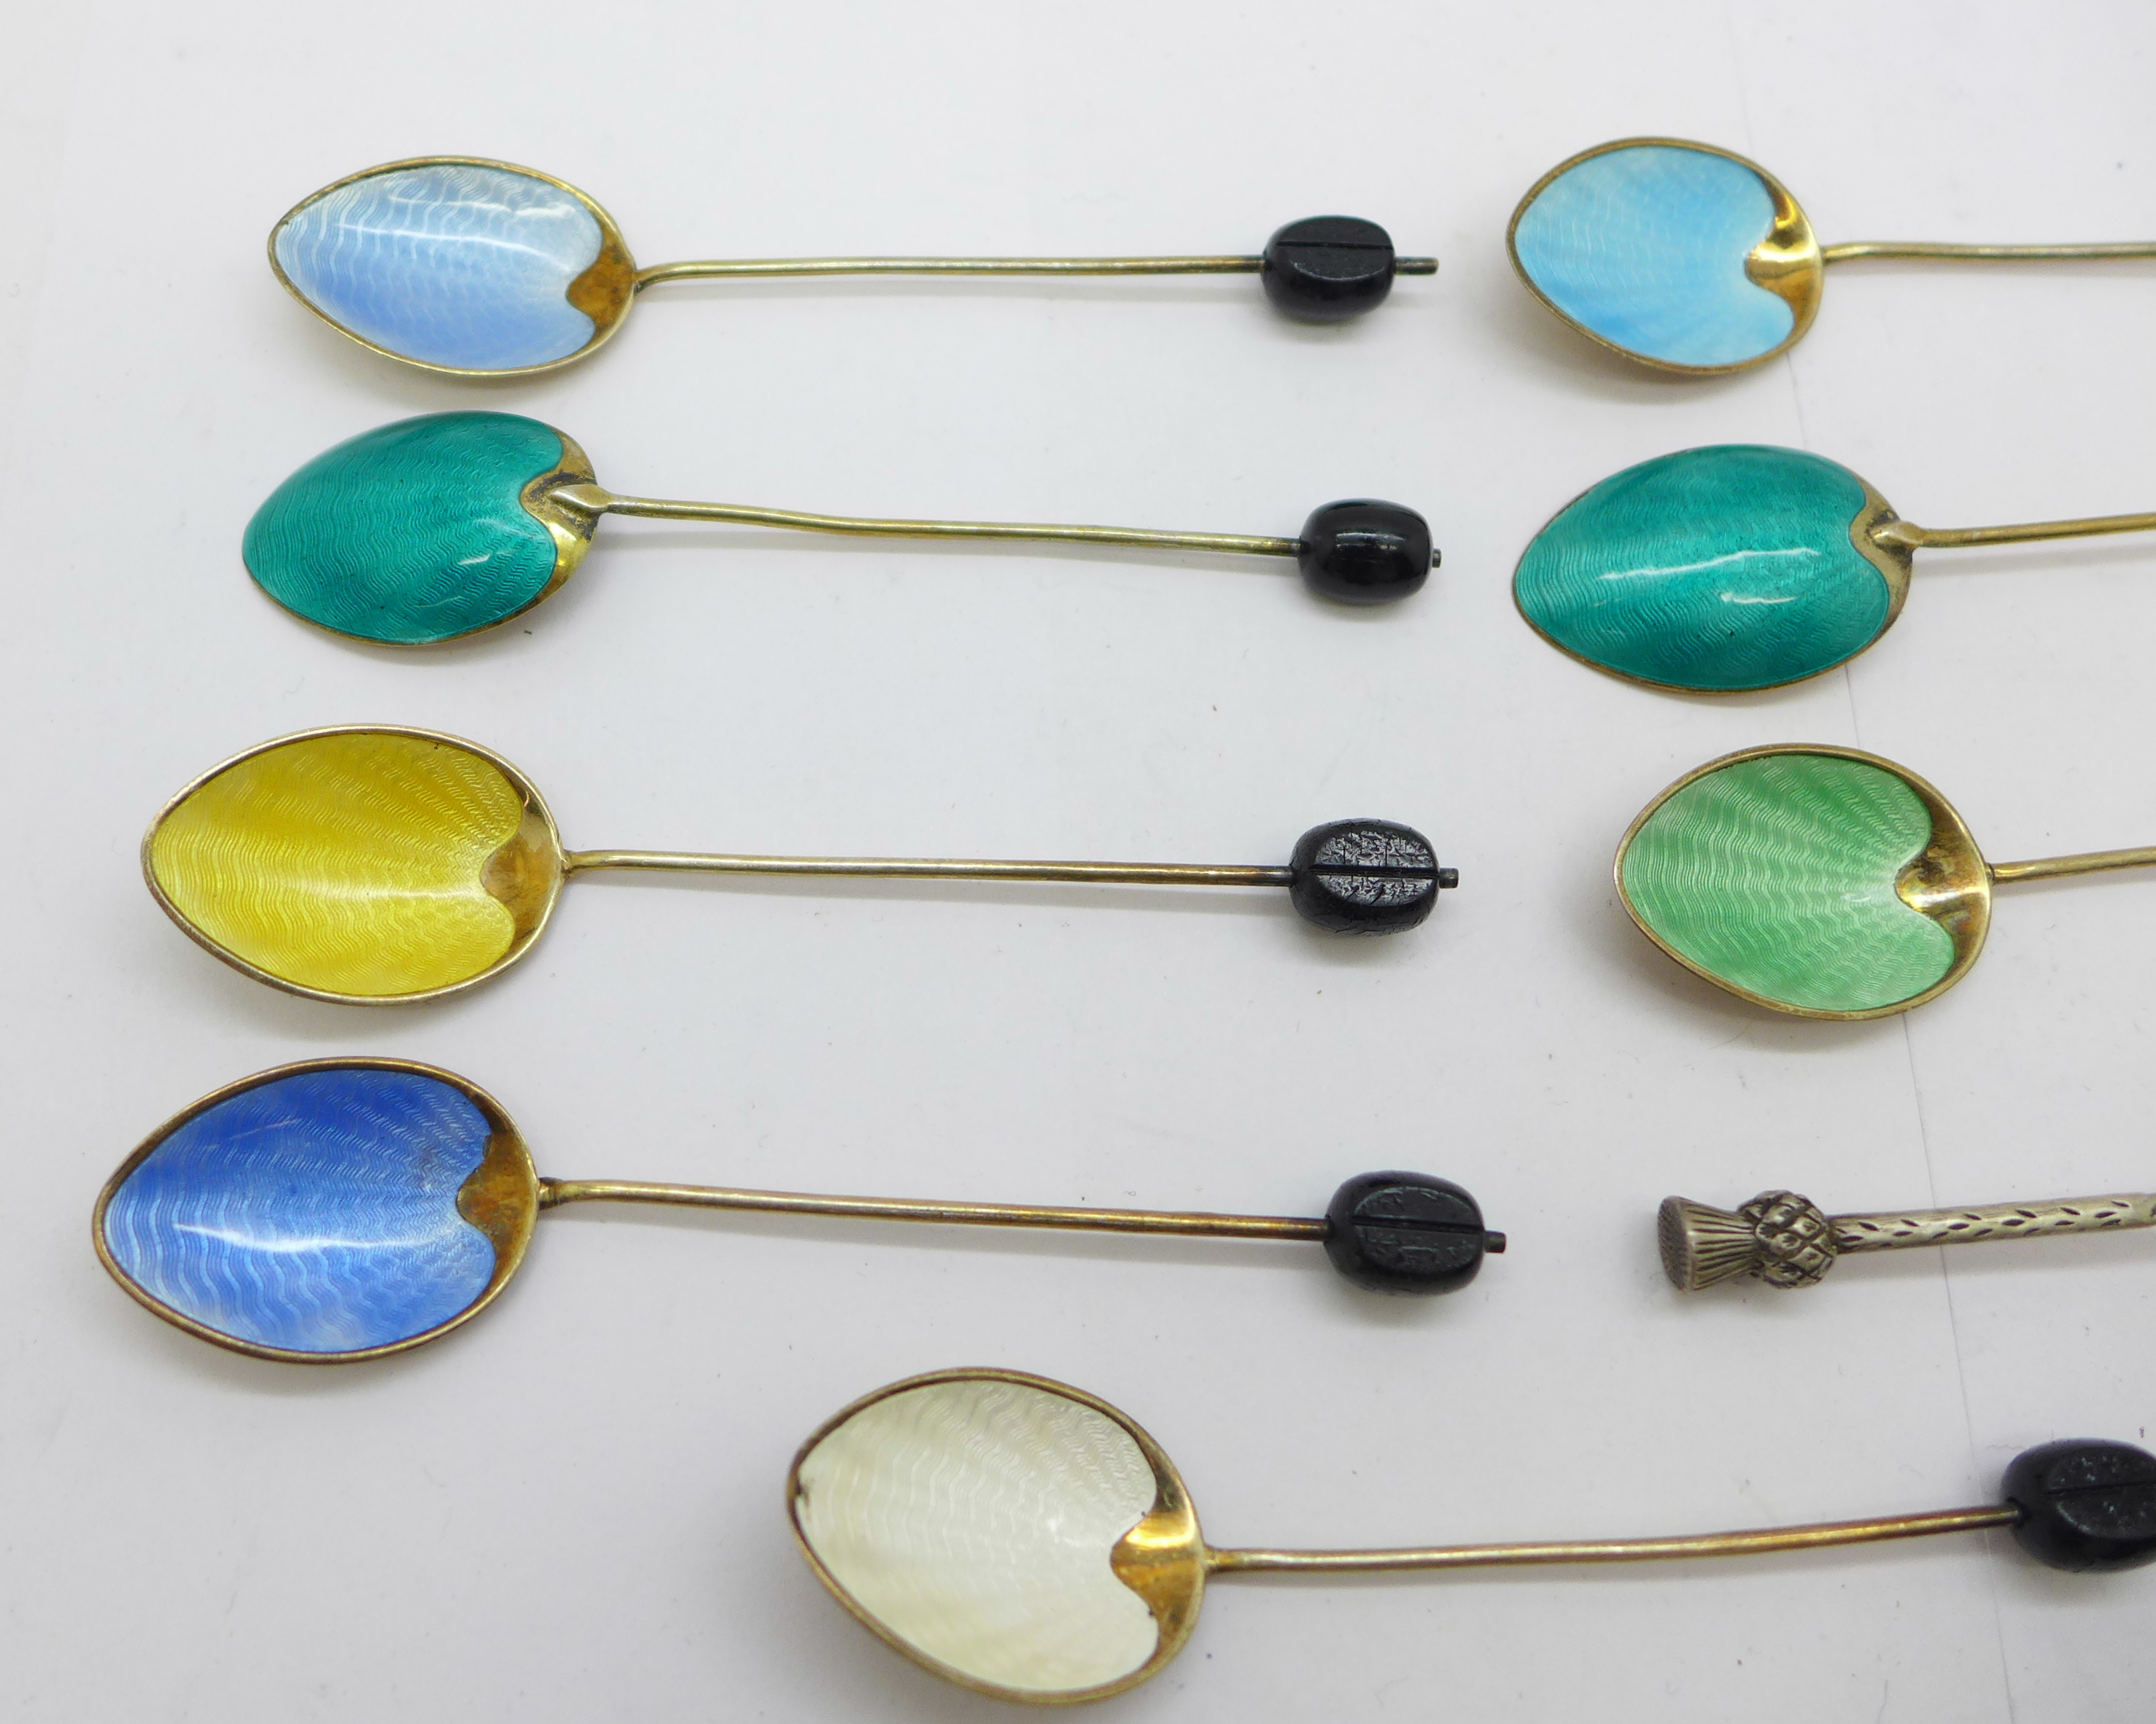 Eight silver and enamel coffee bean spoons, (6+2), and a silver thistle spoon, 72g - Image 2 of 5